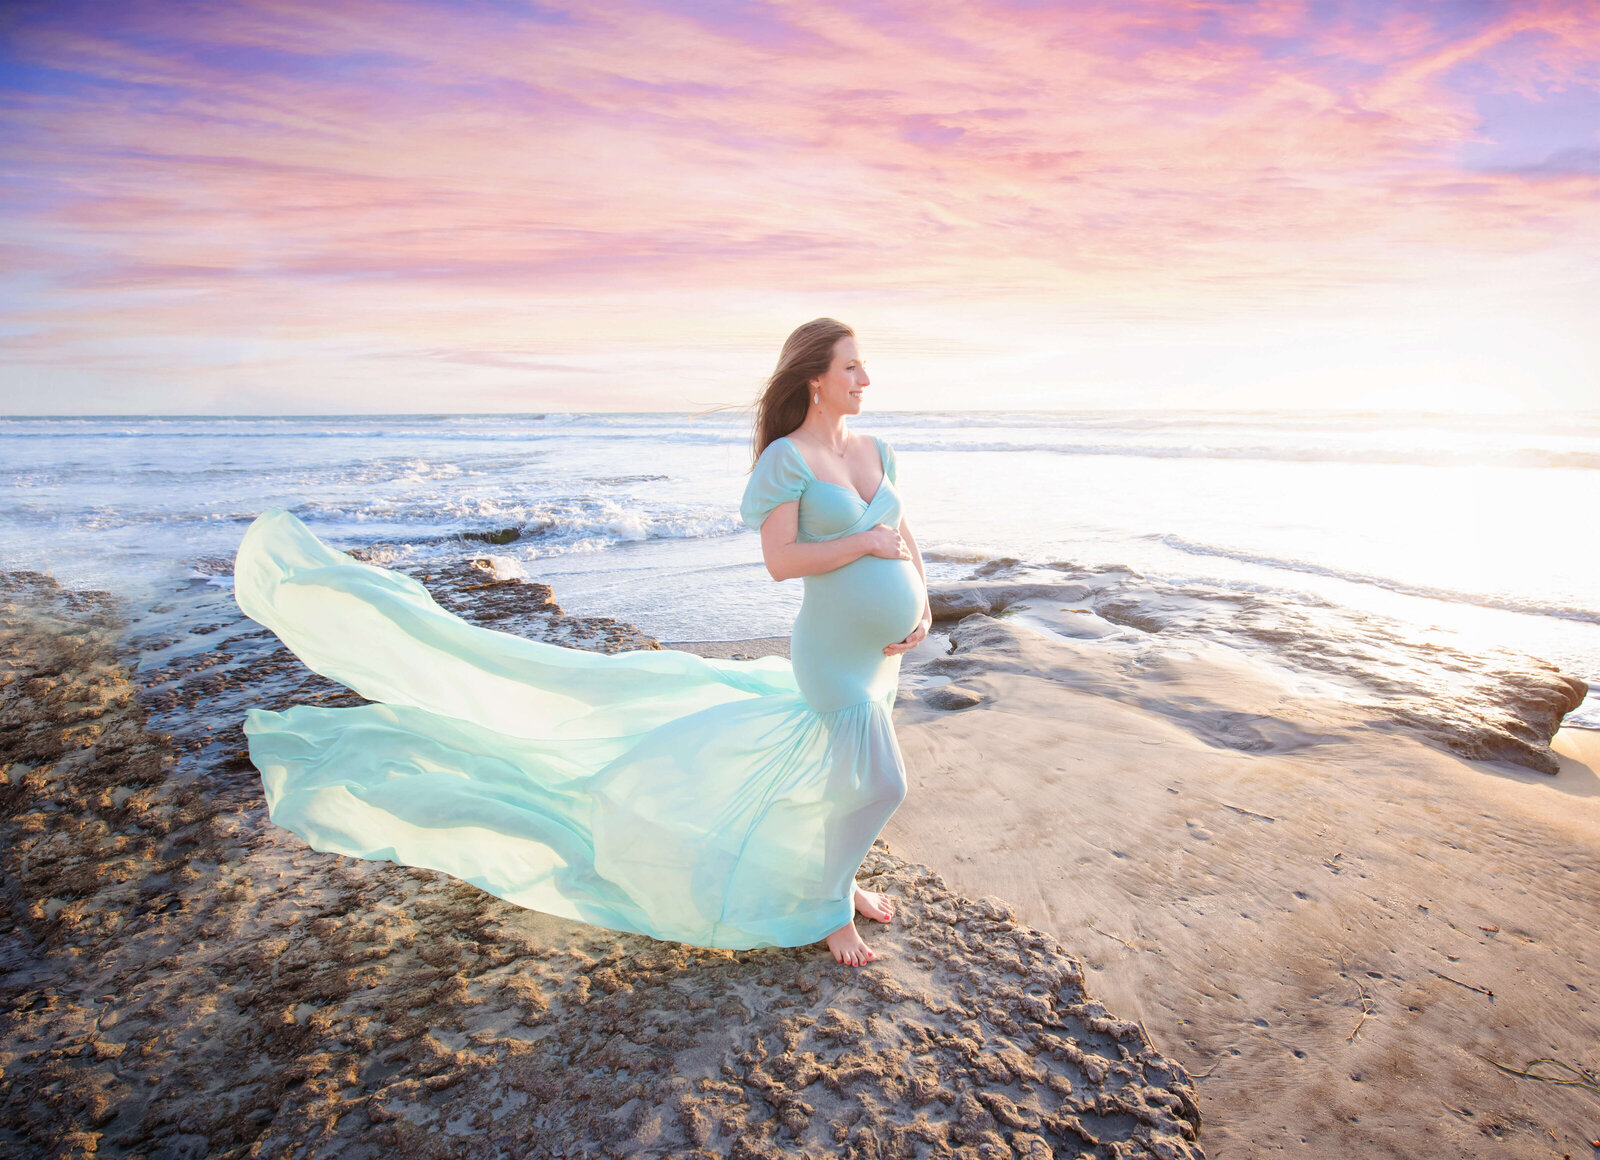 San-diego-maternity-photographer-37